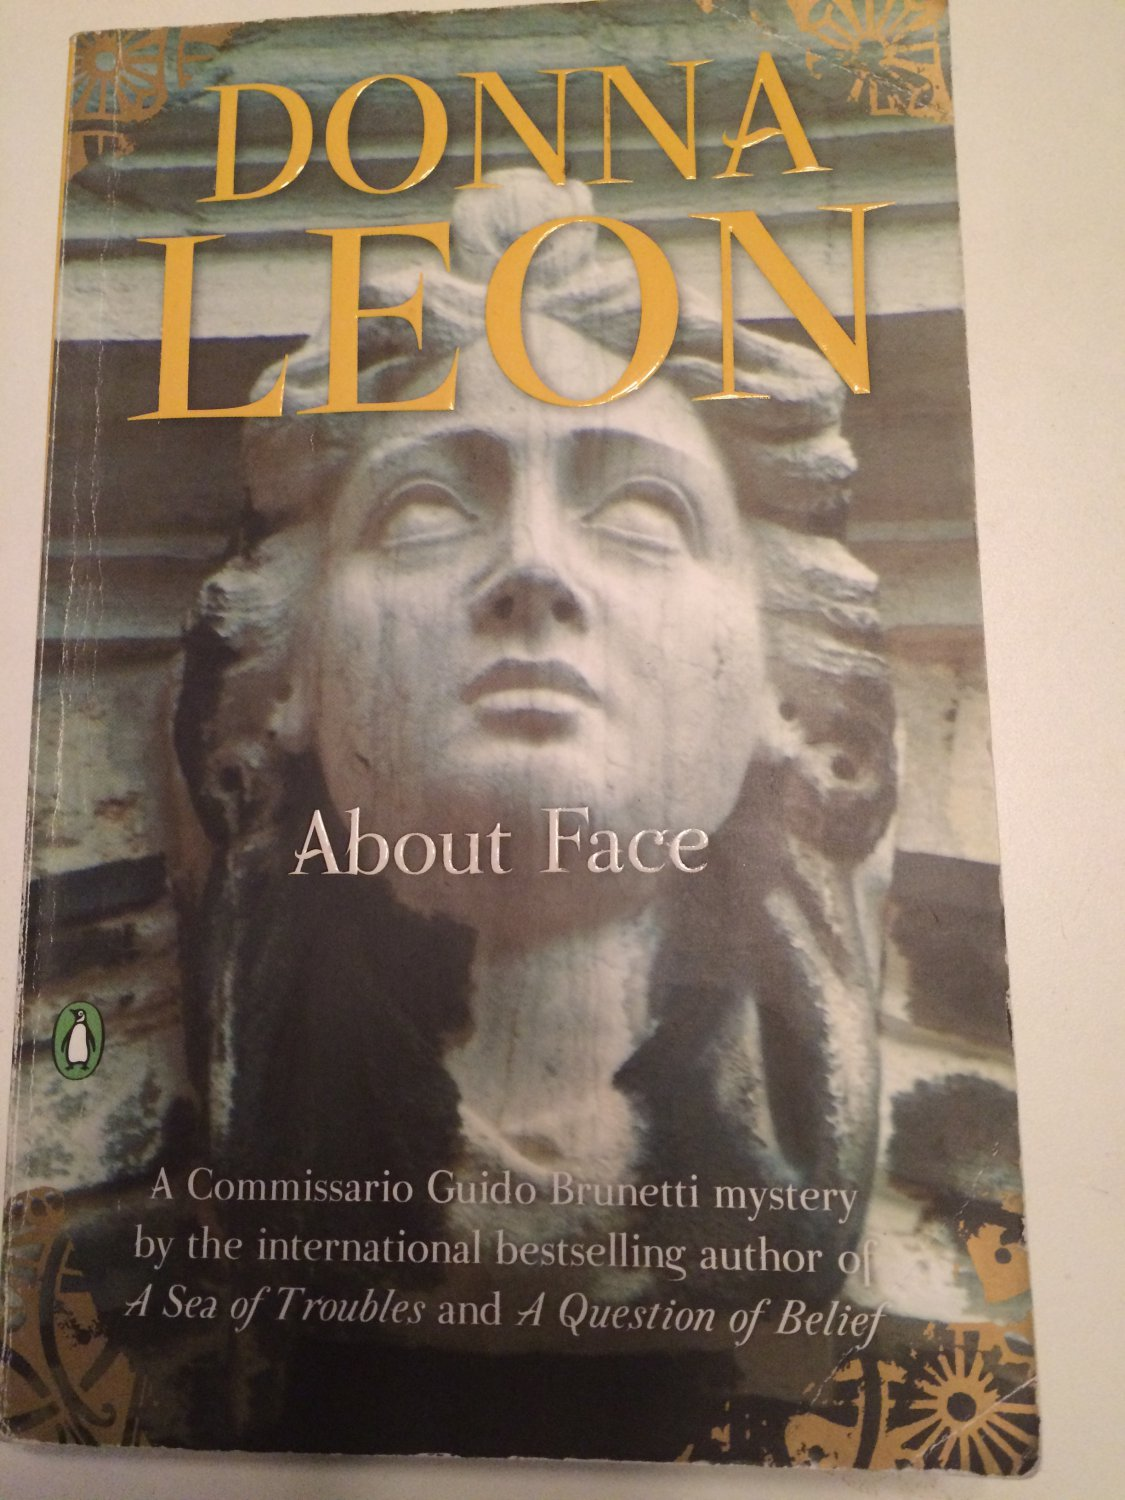 A Commissario Guido Brunetti Mystery: About Face Bk. 1 by Donna Leon (2010, Paperback)